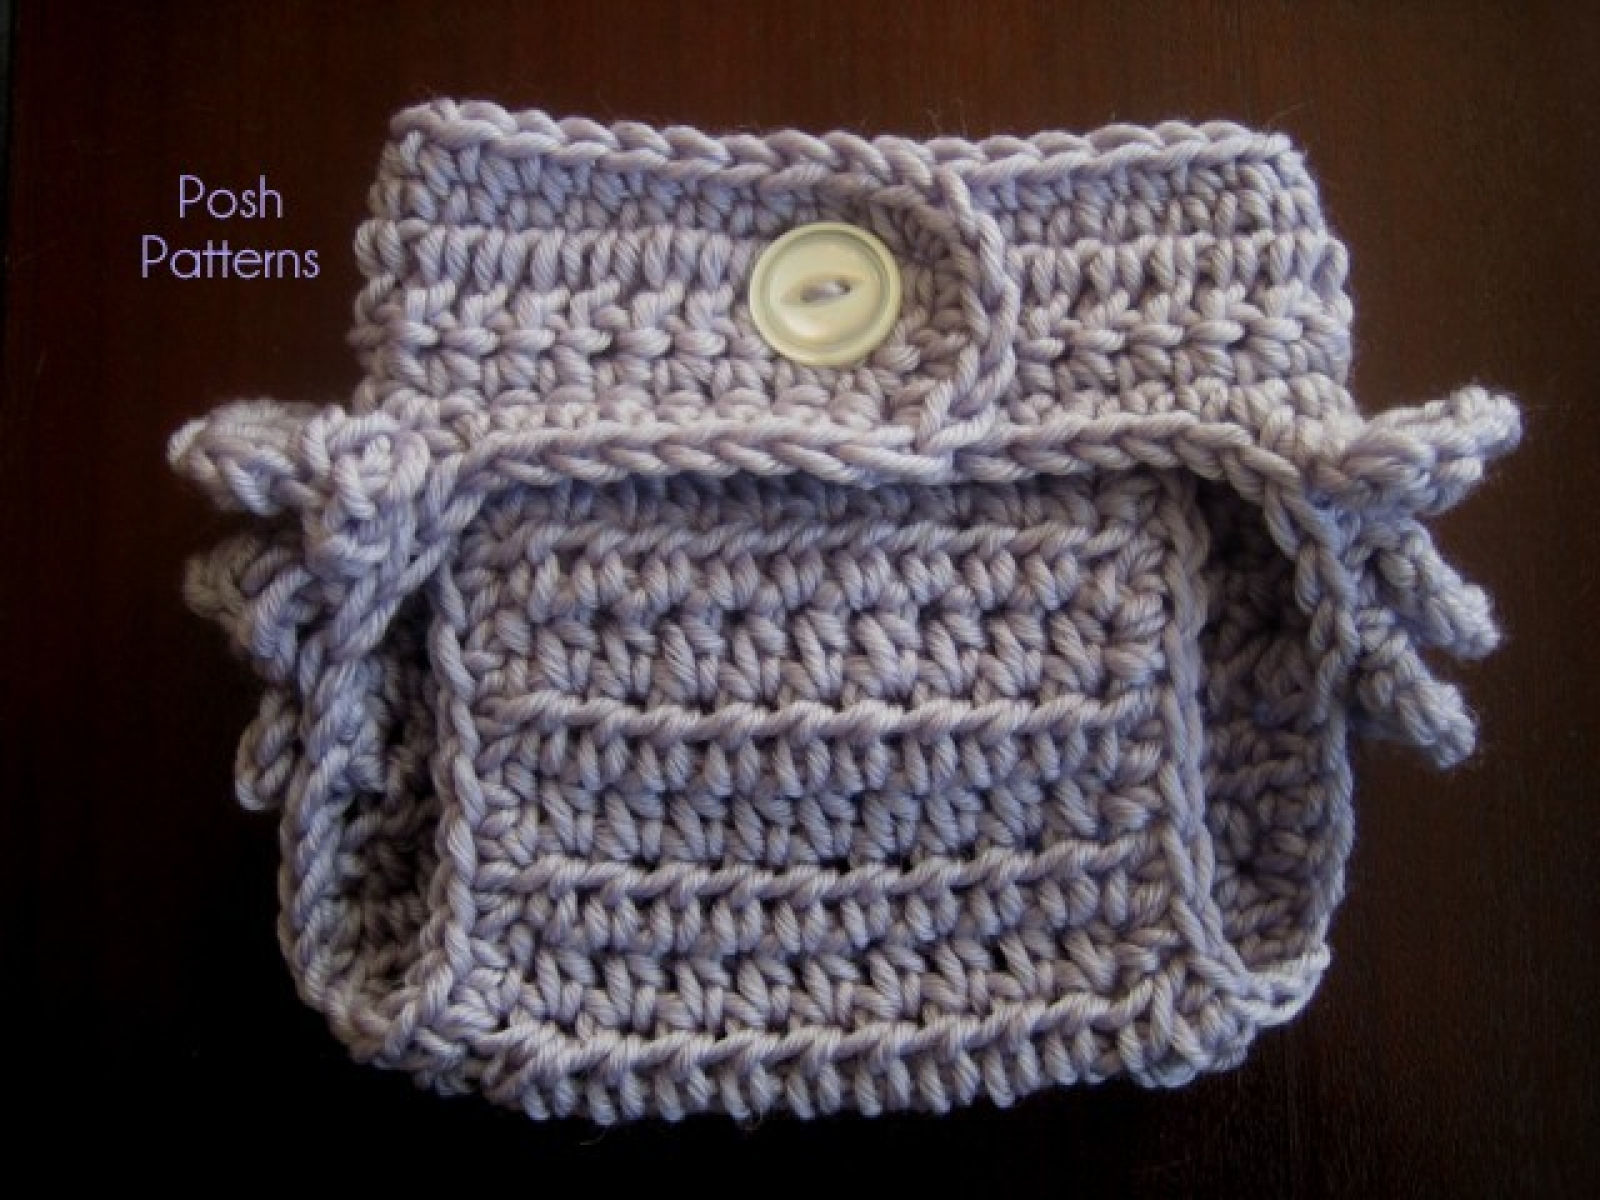 Crochet Pattern Ruffle Bottom Diaper Cover